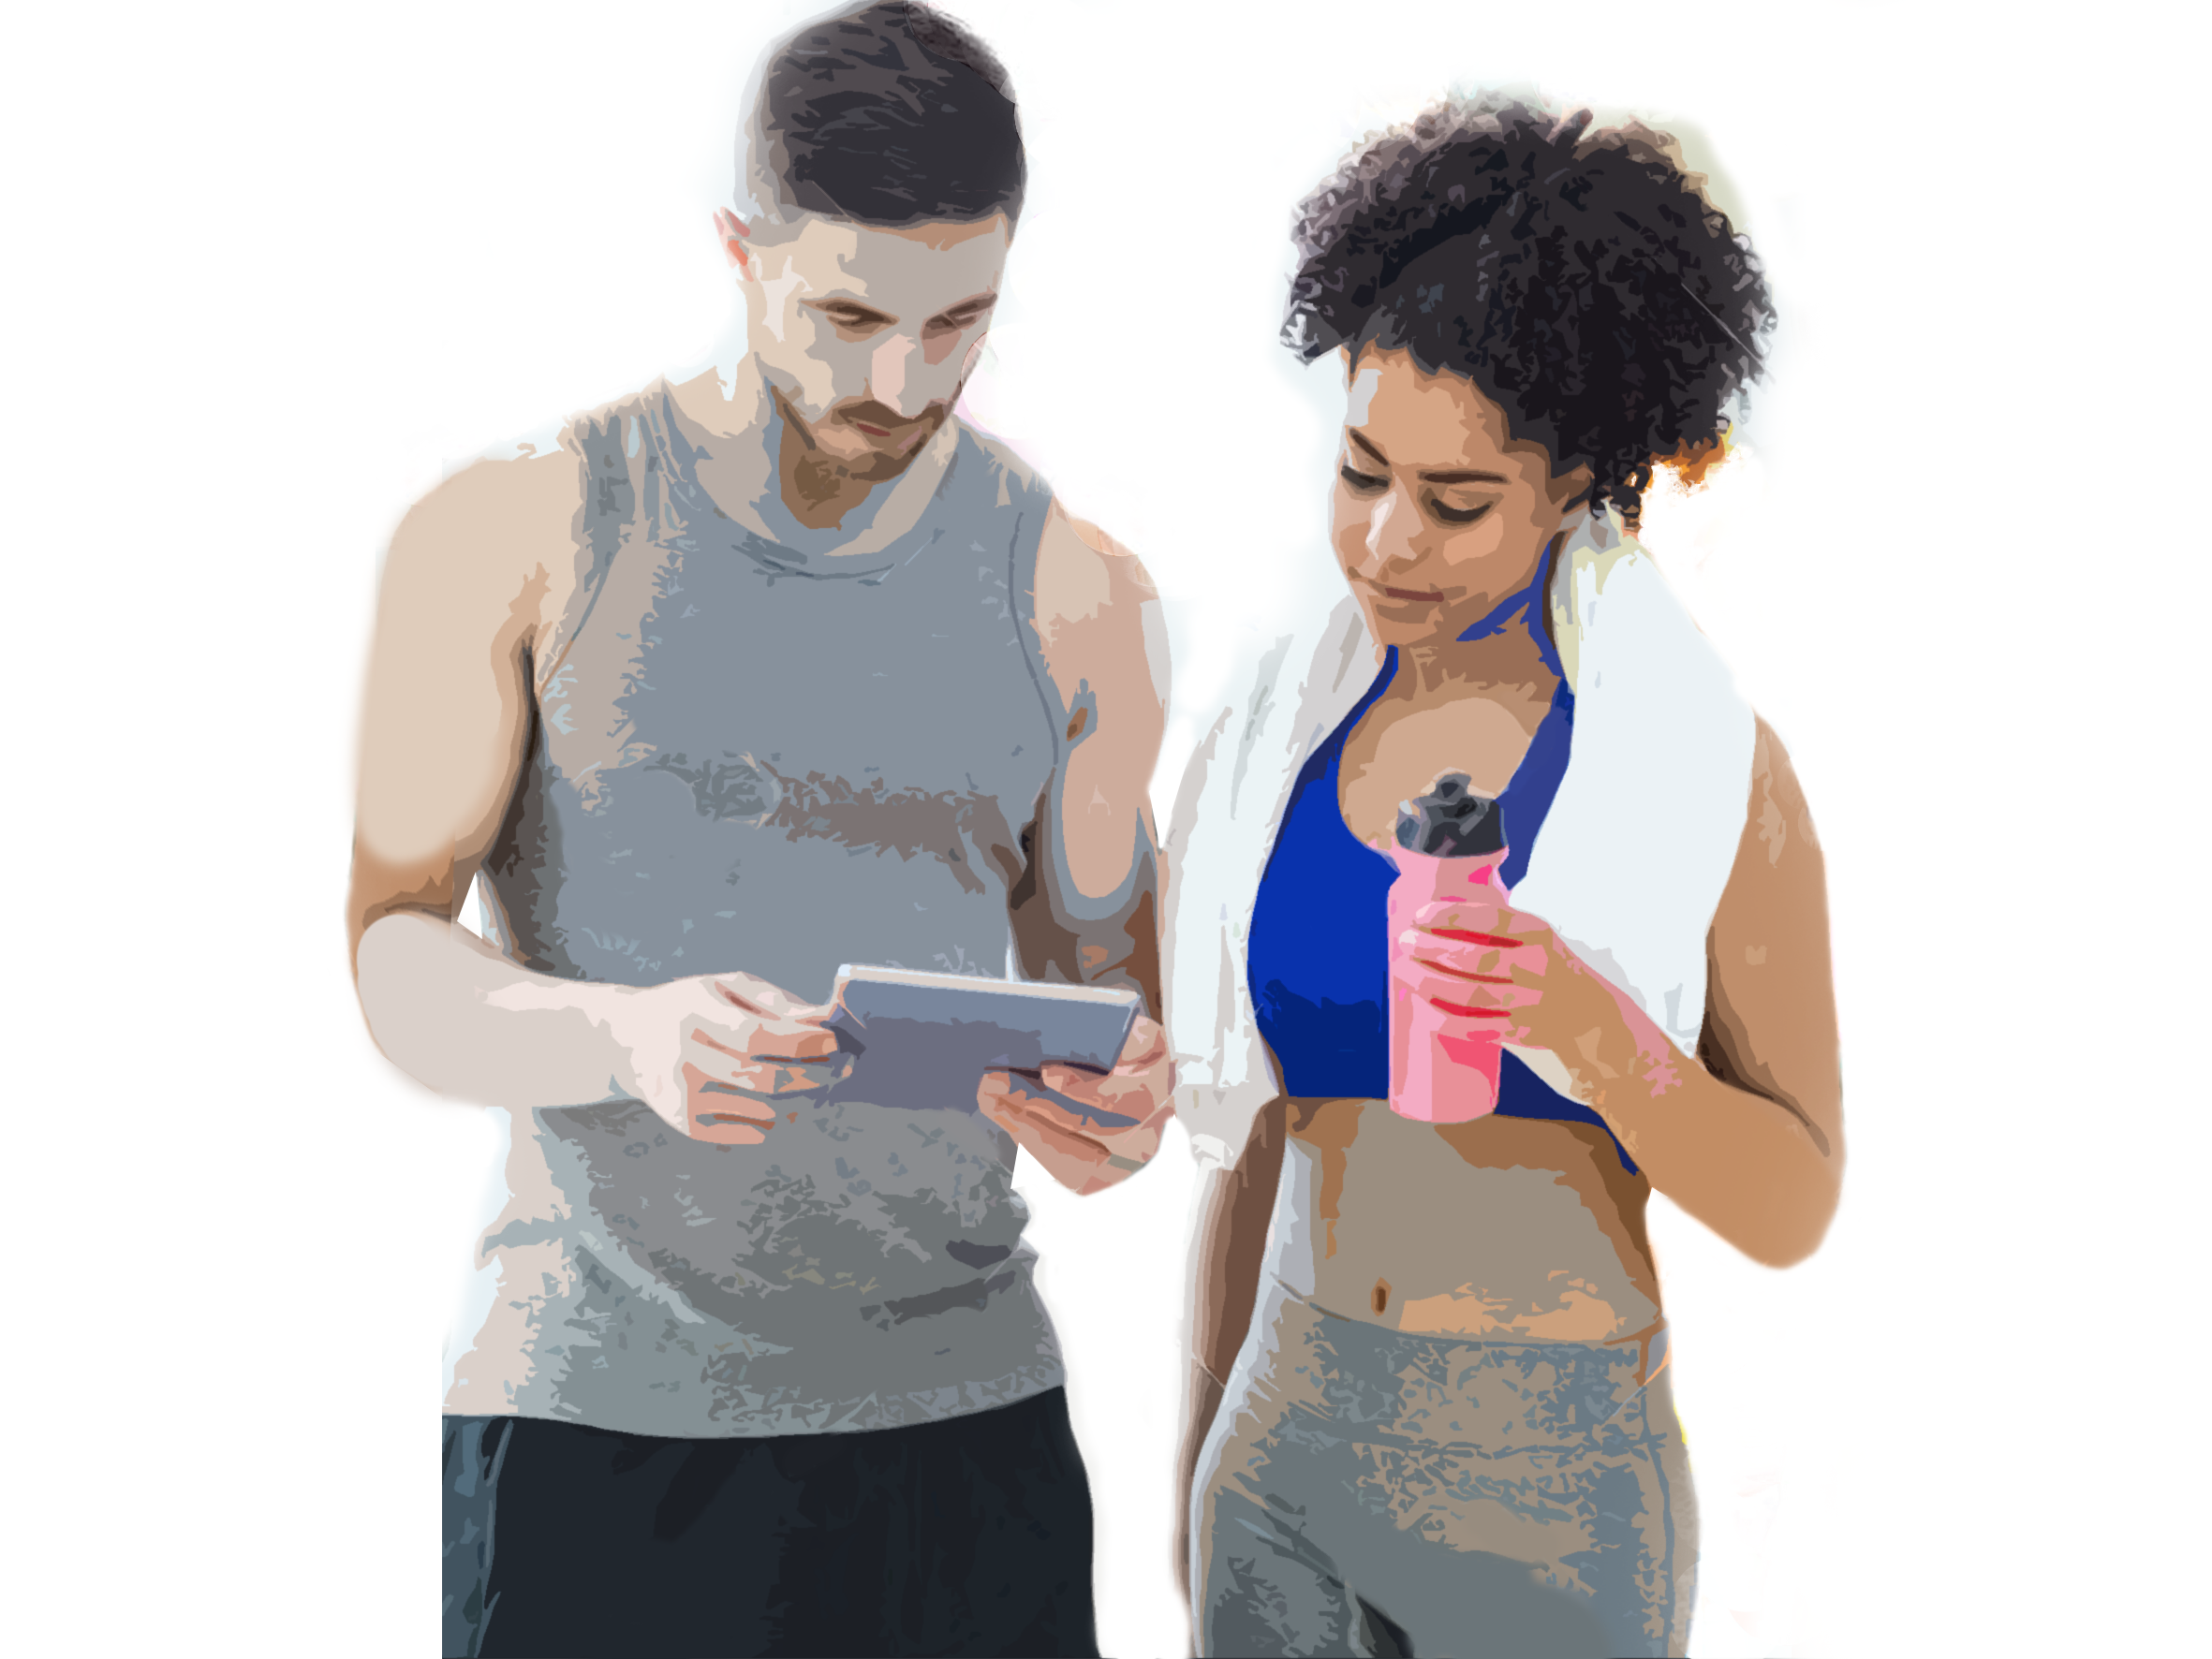 Streamlining Operations - Organize management with automated follow up, manager oversight on trainers, clients and members and reporting on fitness performance, progress and engagement.Automate your fitness management and make sure everyone is accountable for all relevant touch points with customers.